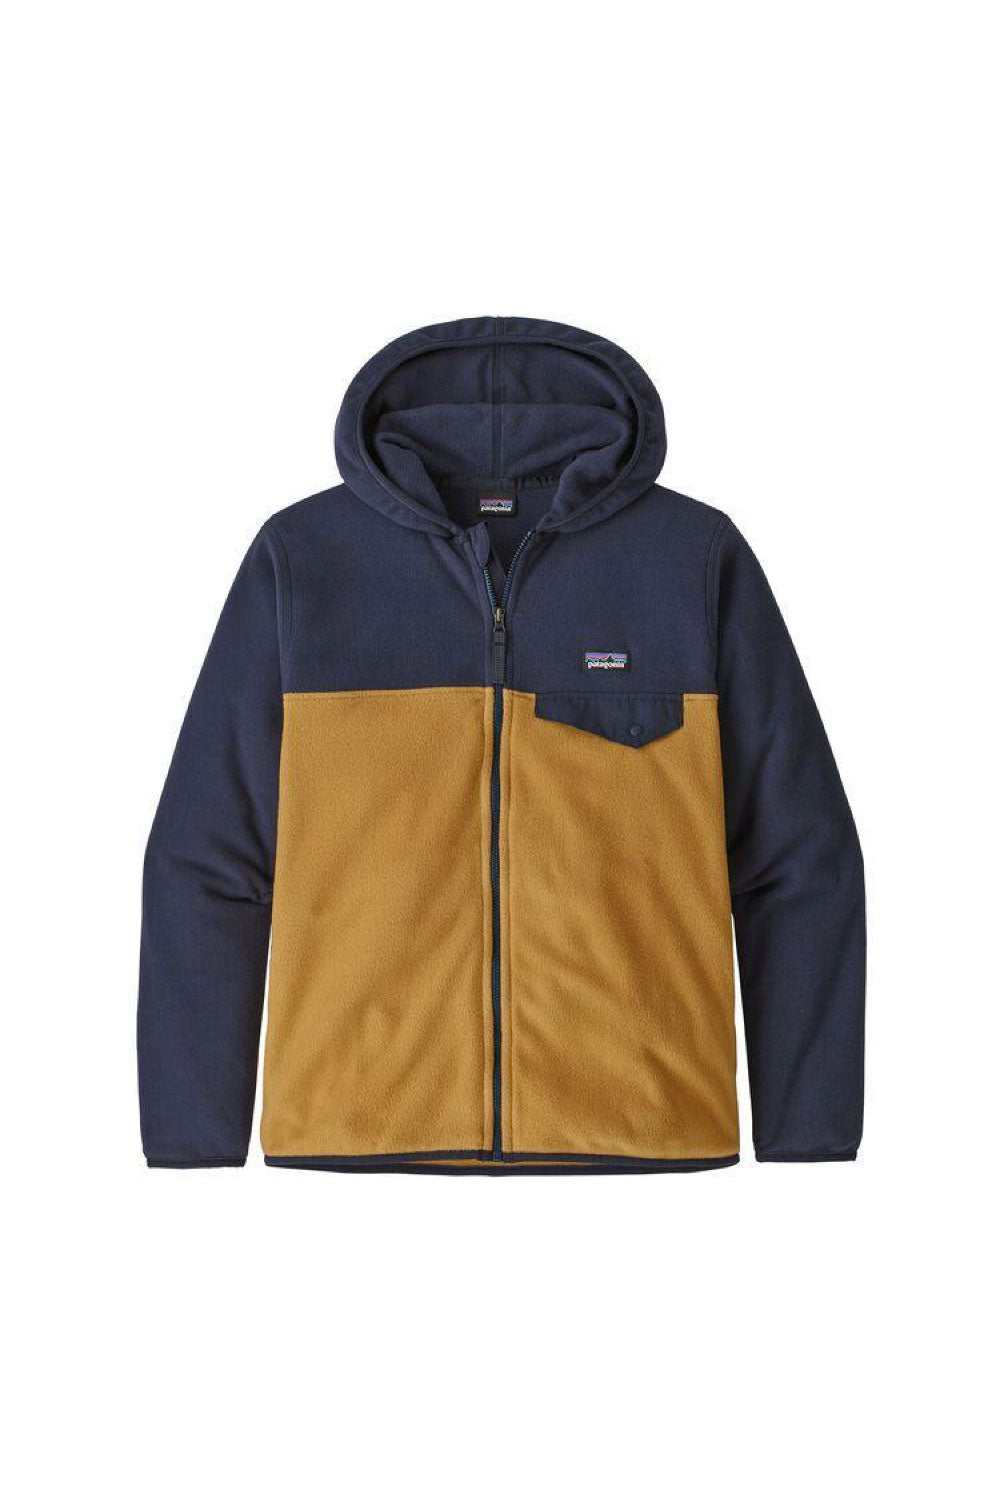 Patagonia Boy's Micro D Snap-T Jacket